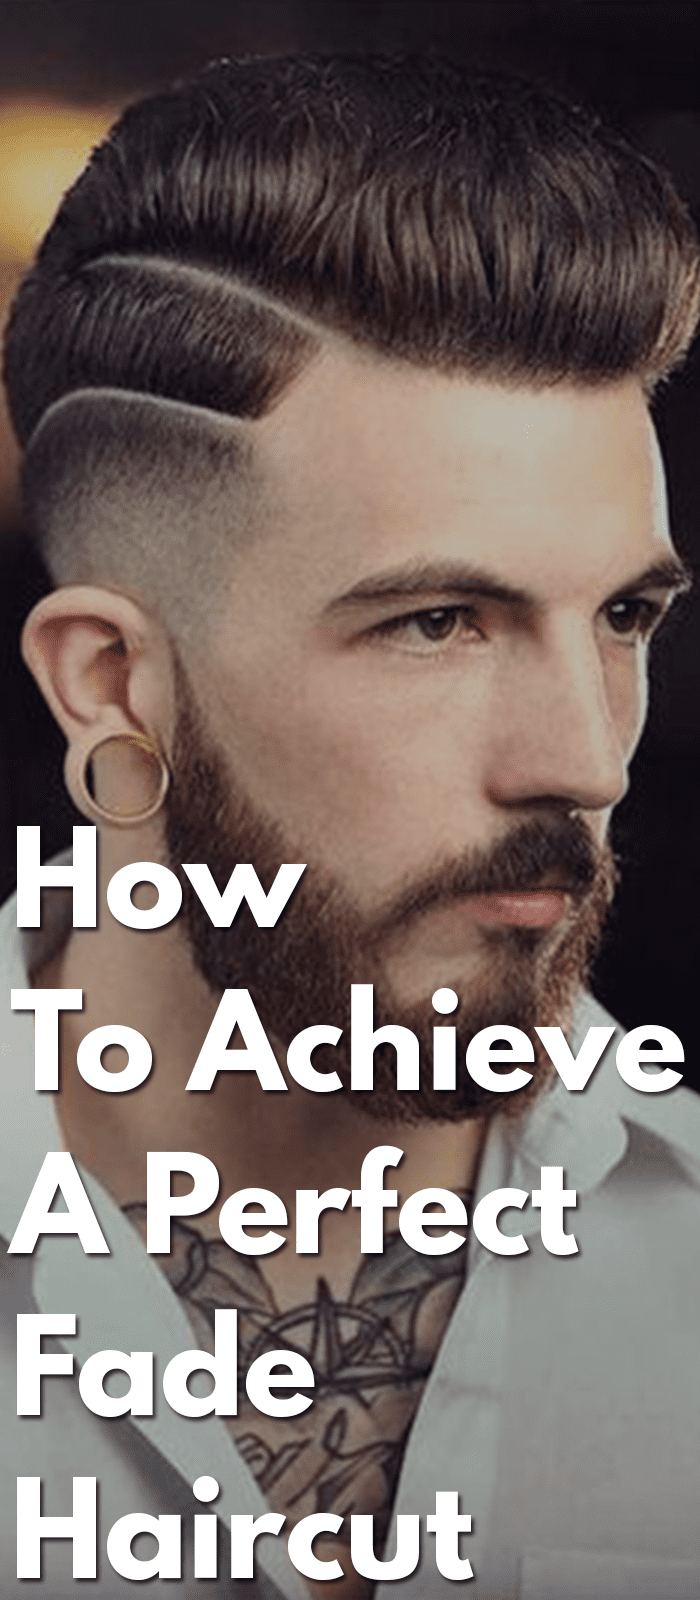 How-To-Achieve-A-Perfect-Fade-Haircut